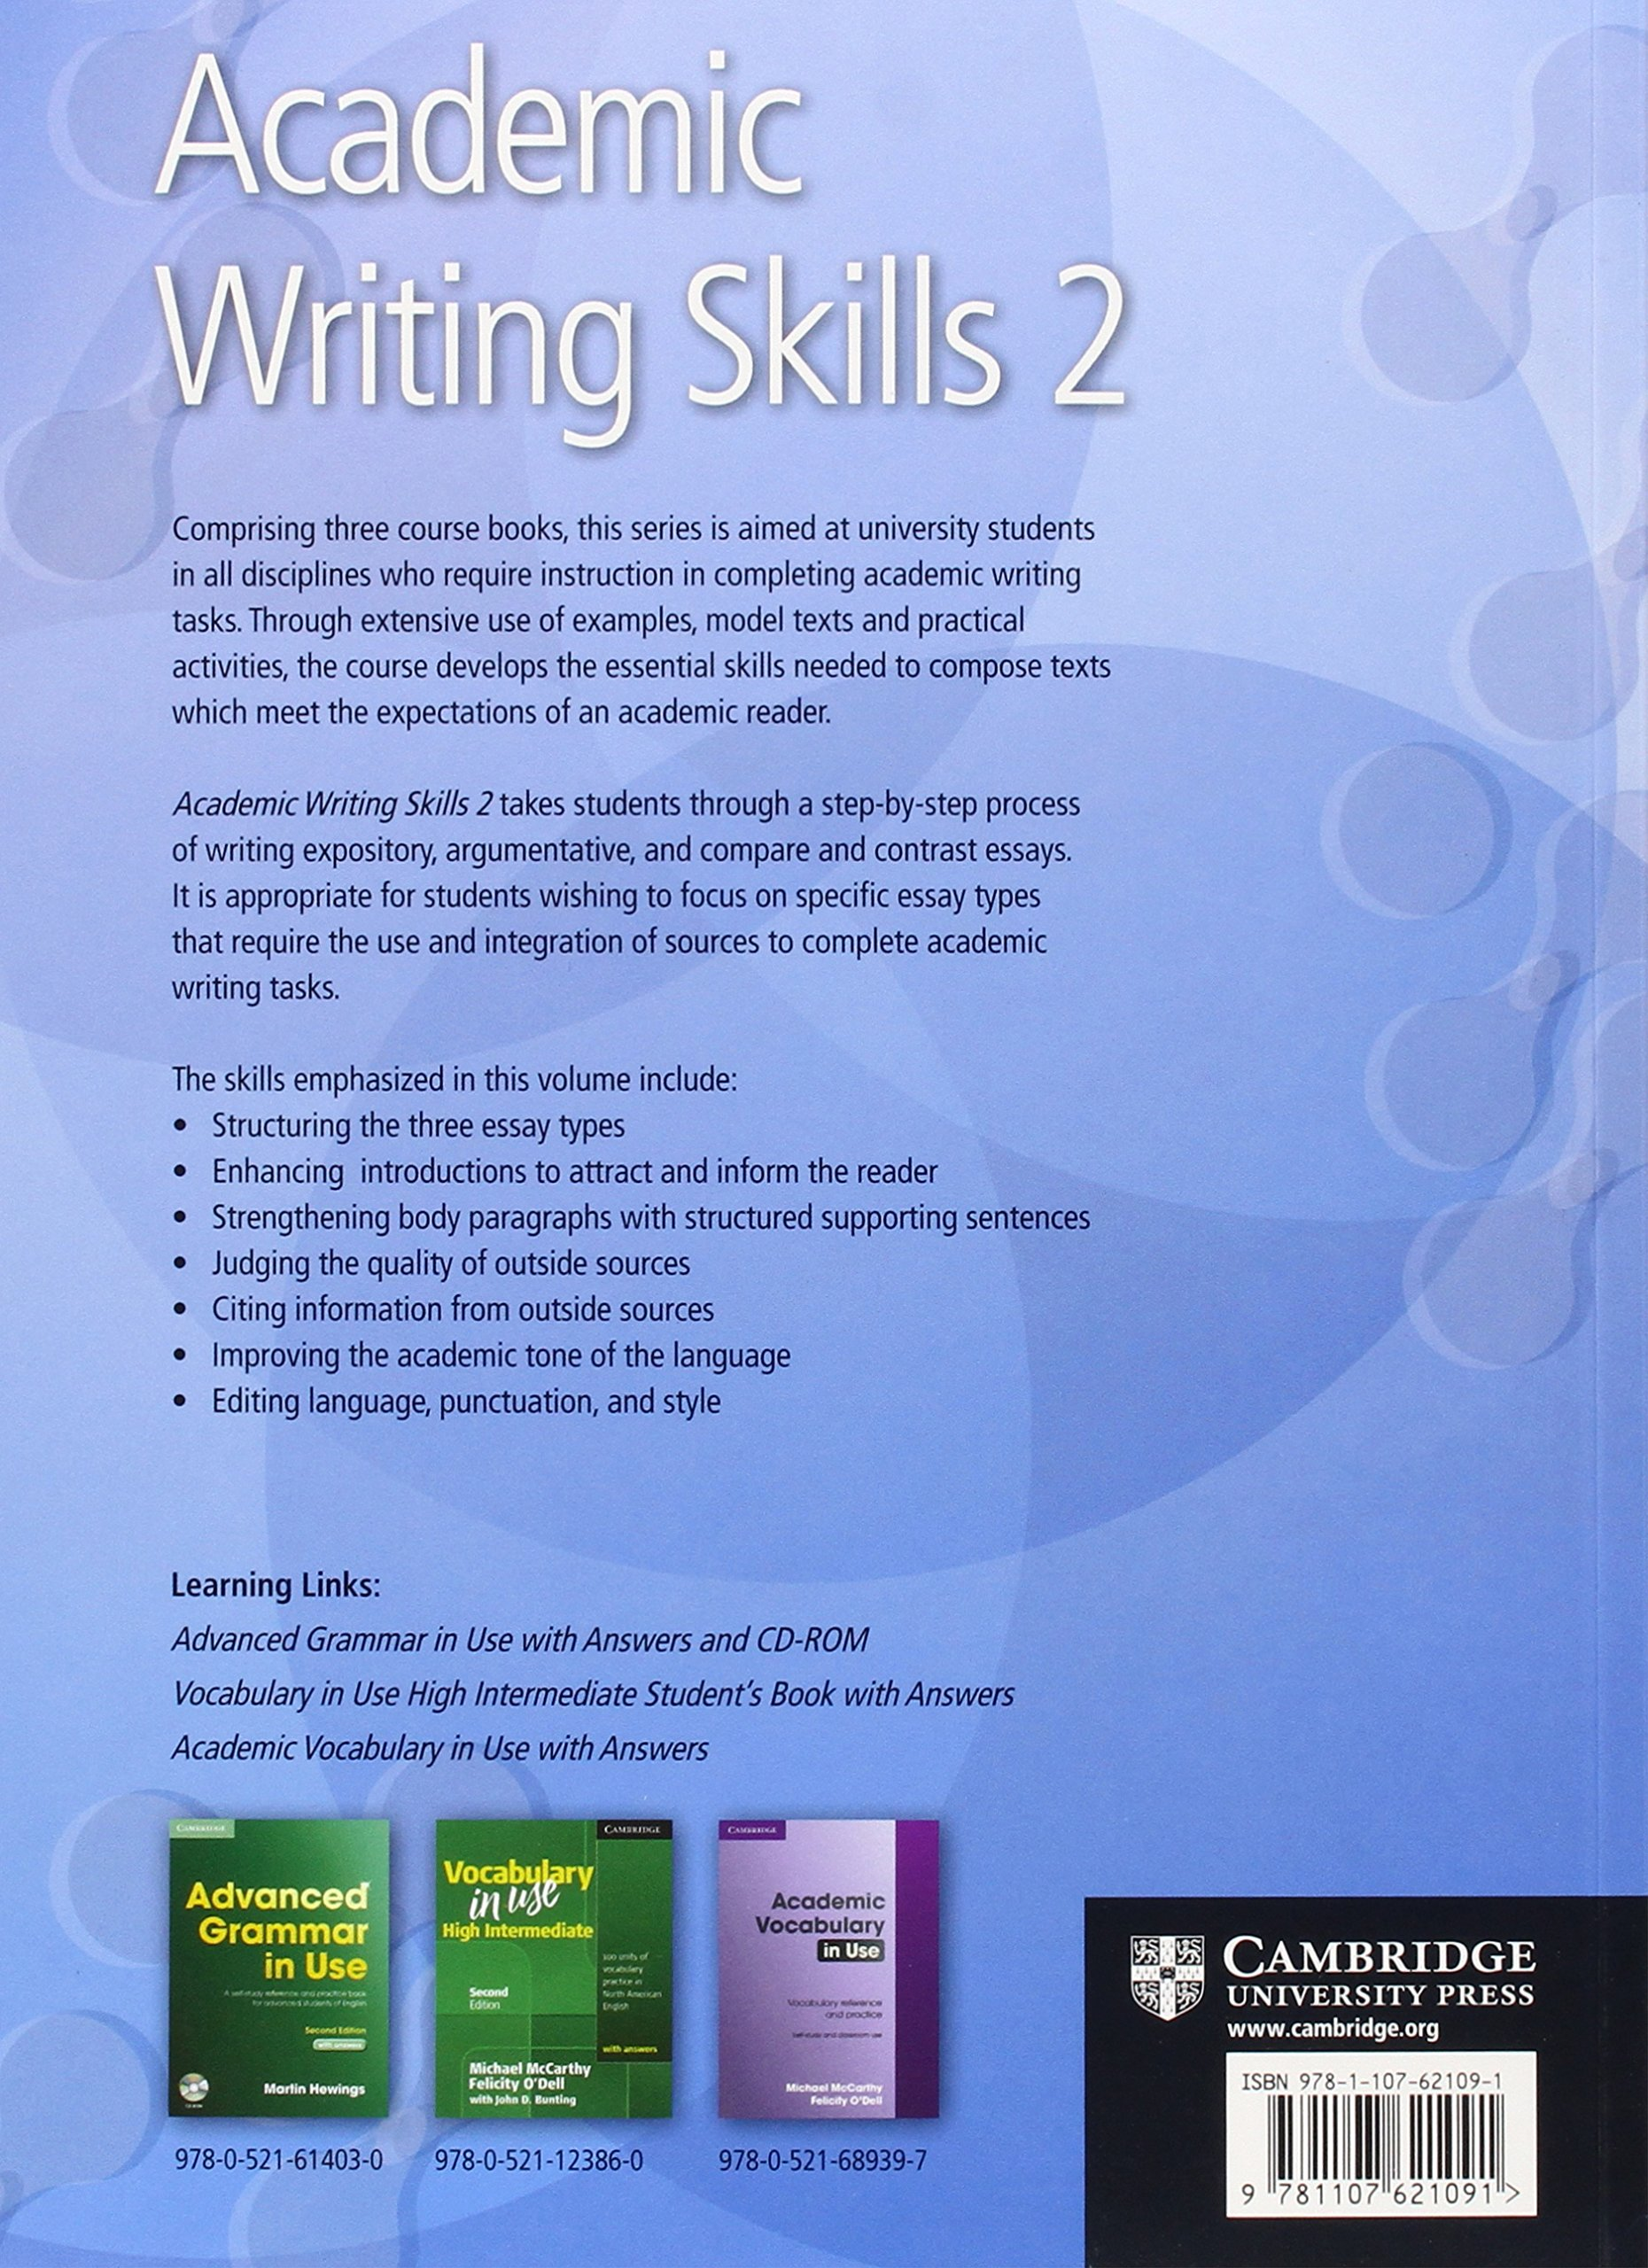 academic writing skills 2 student s book peter chin samuel reid academic writing skills 2 student s book peter chin samuel reid sean wray yoko yamazaki 2791526360 co jp